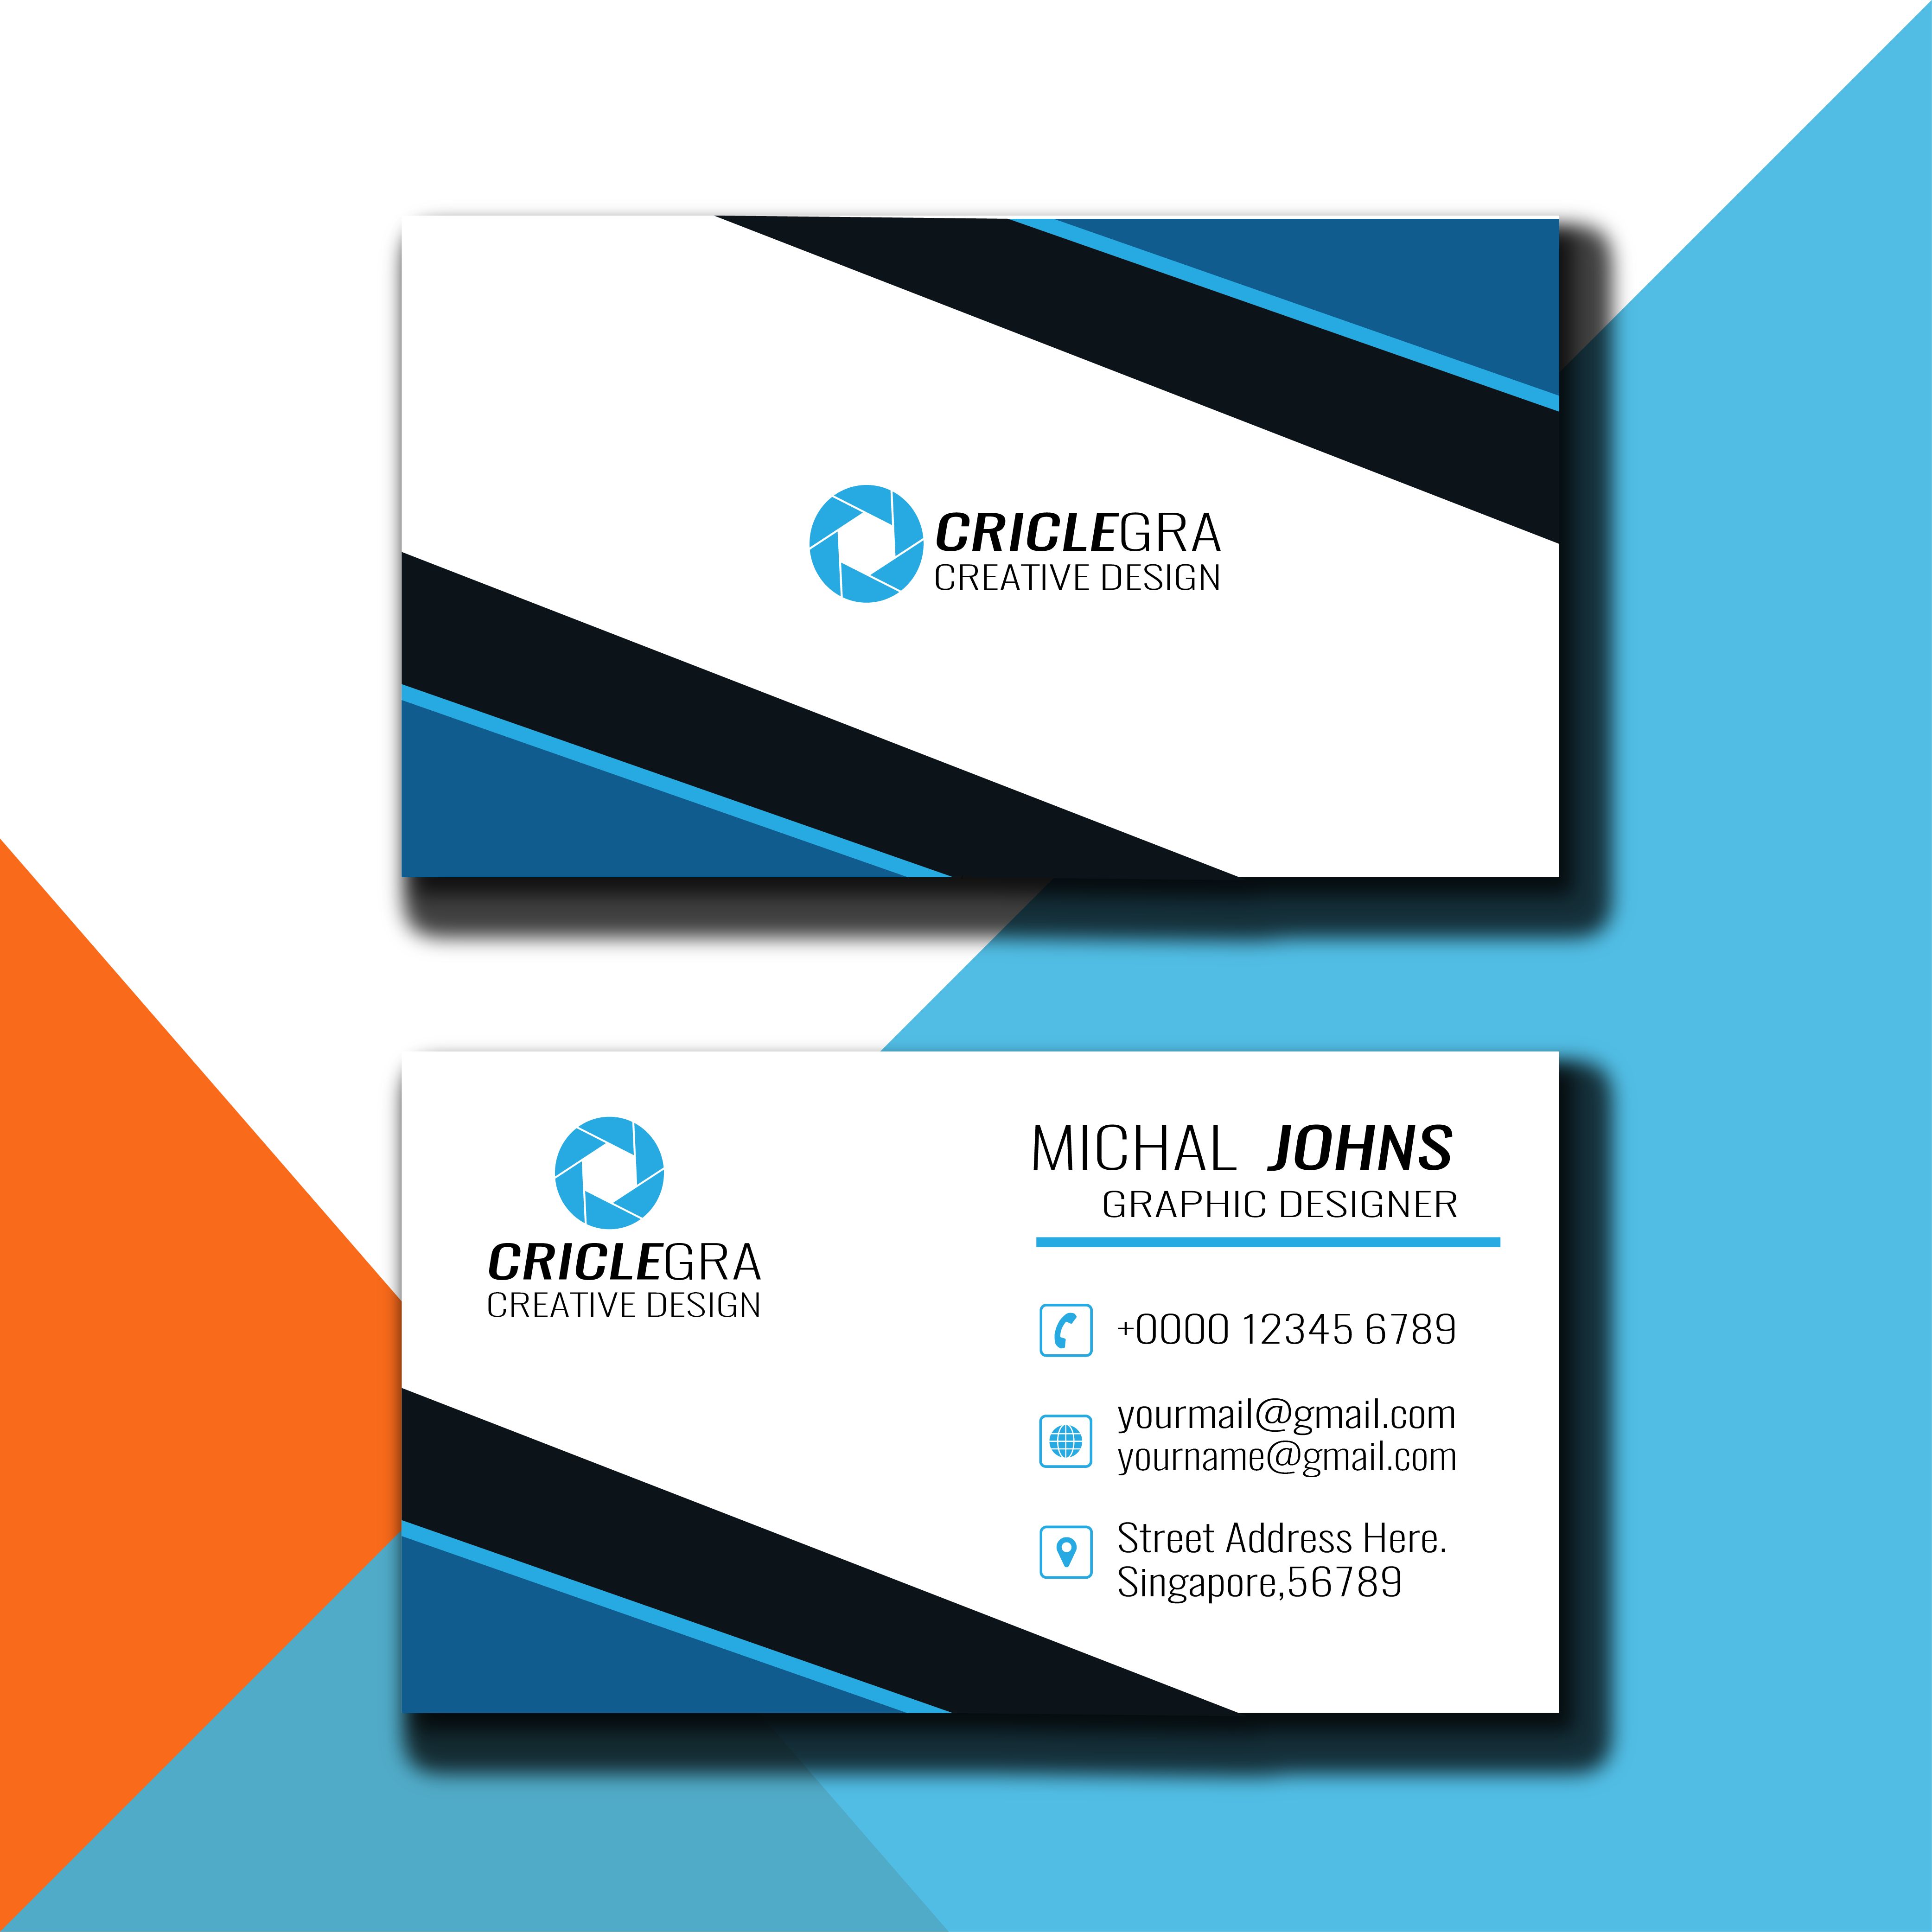 I will business card with two concepts 24 hours